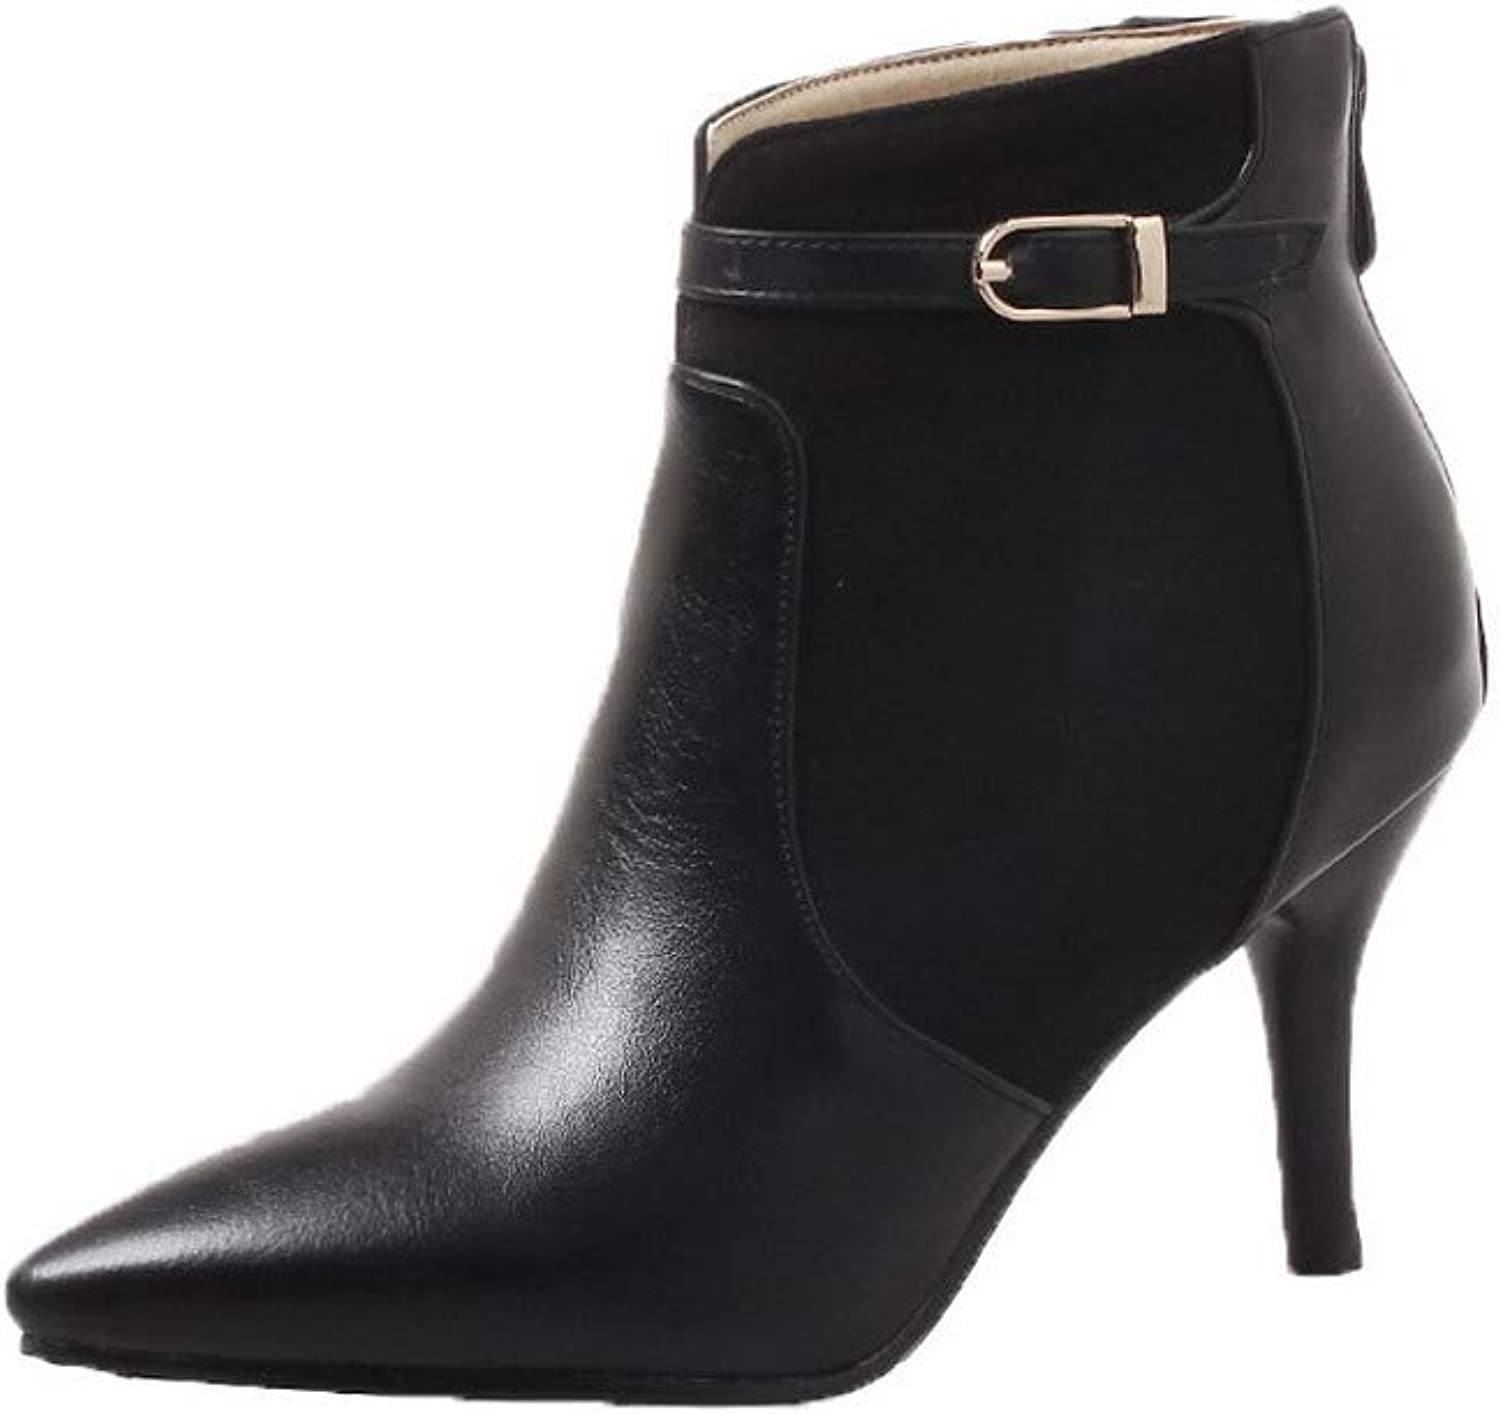 AllhqFashion Women's Pointed-Toe Blend Materials Ankle-High Solid Boots, FBUXD126600